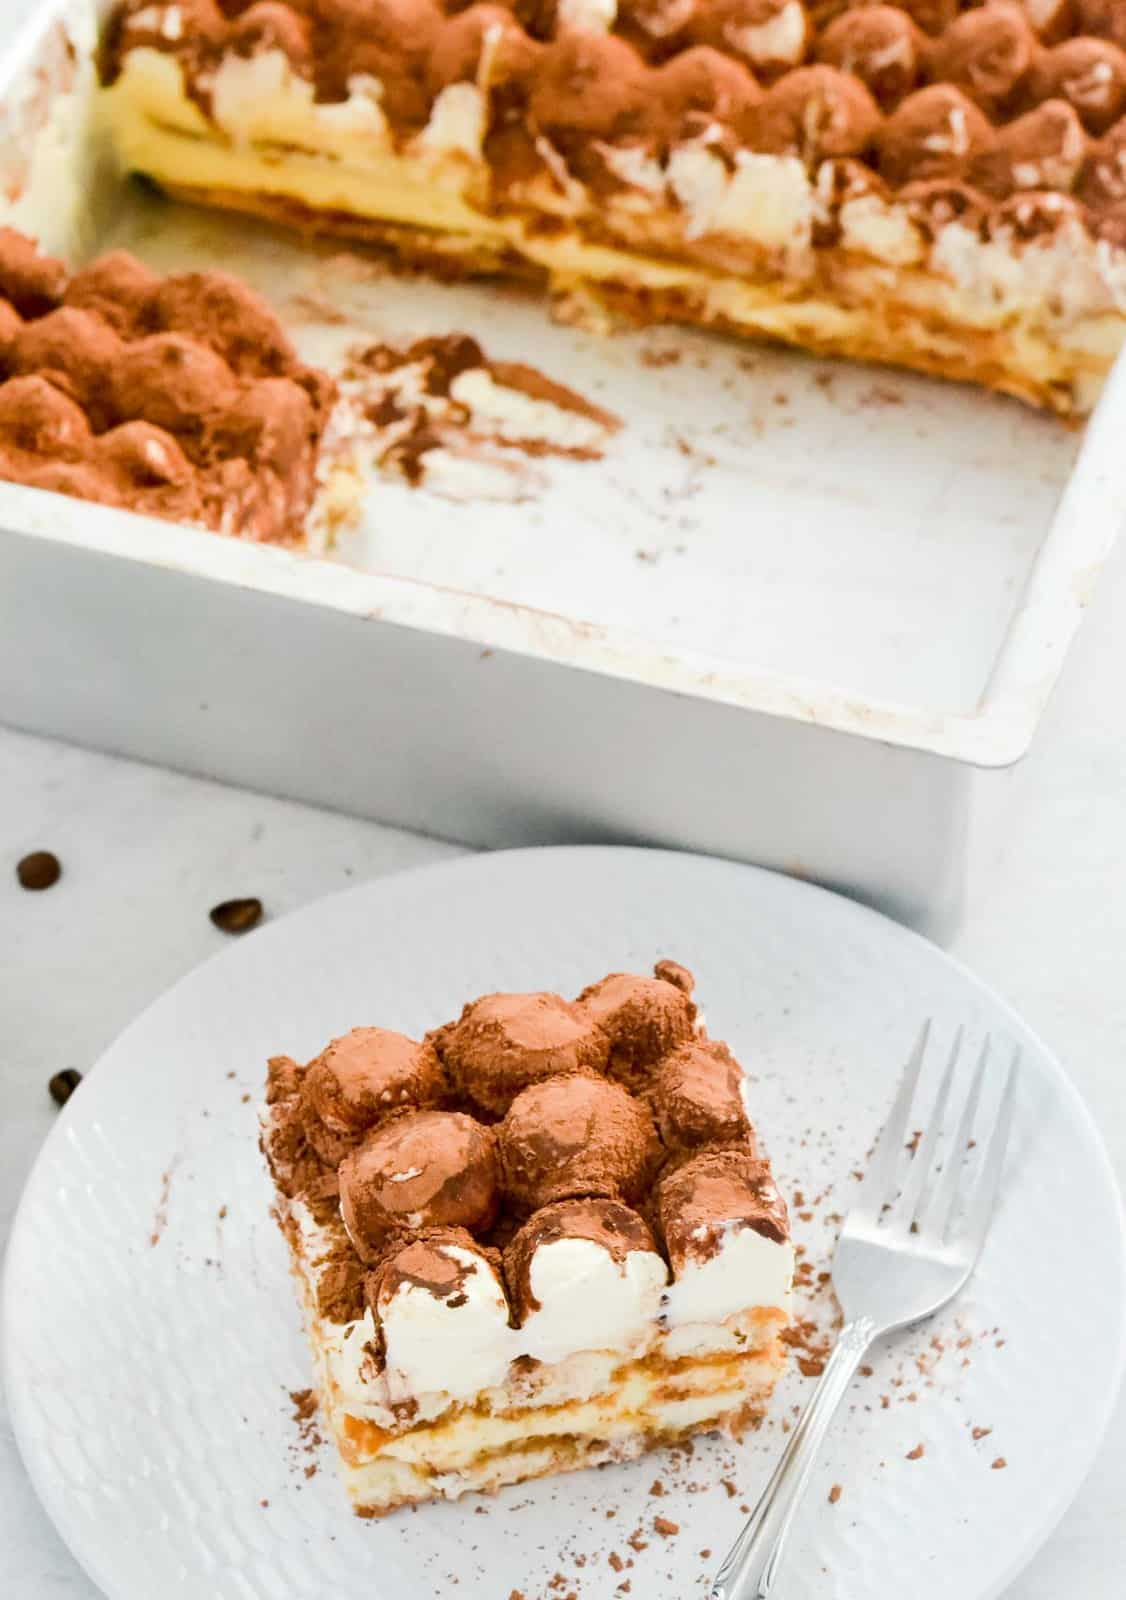 A tray of tiramisu with a piece removed on a plate.